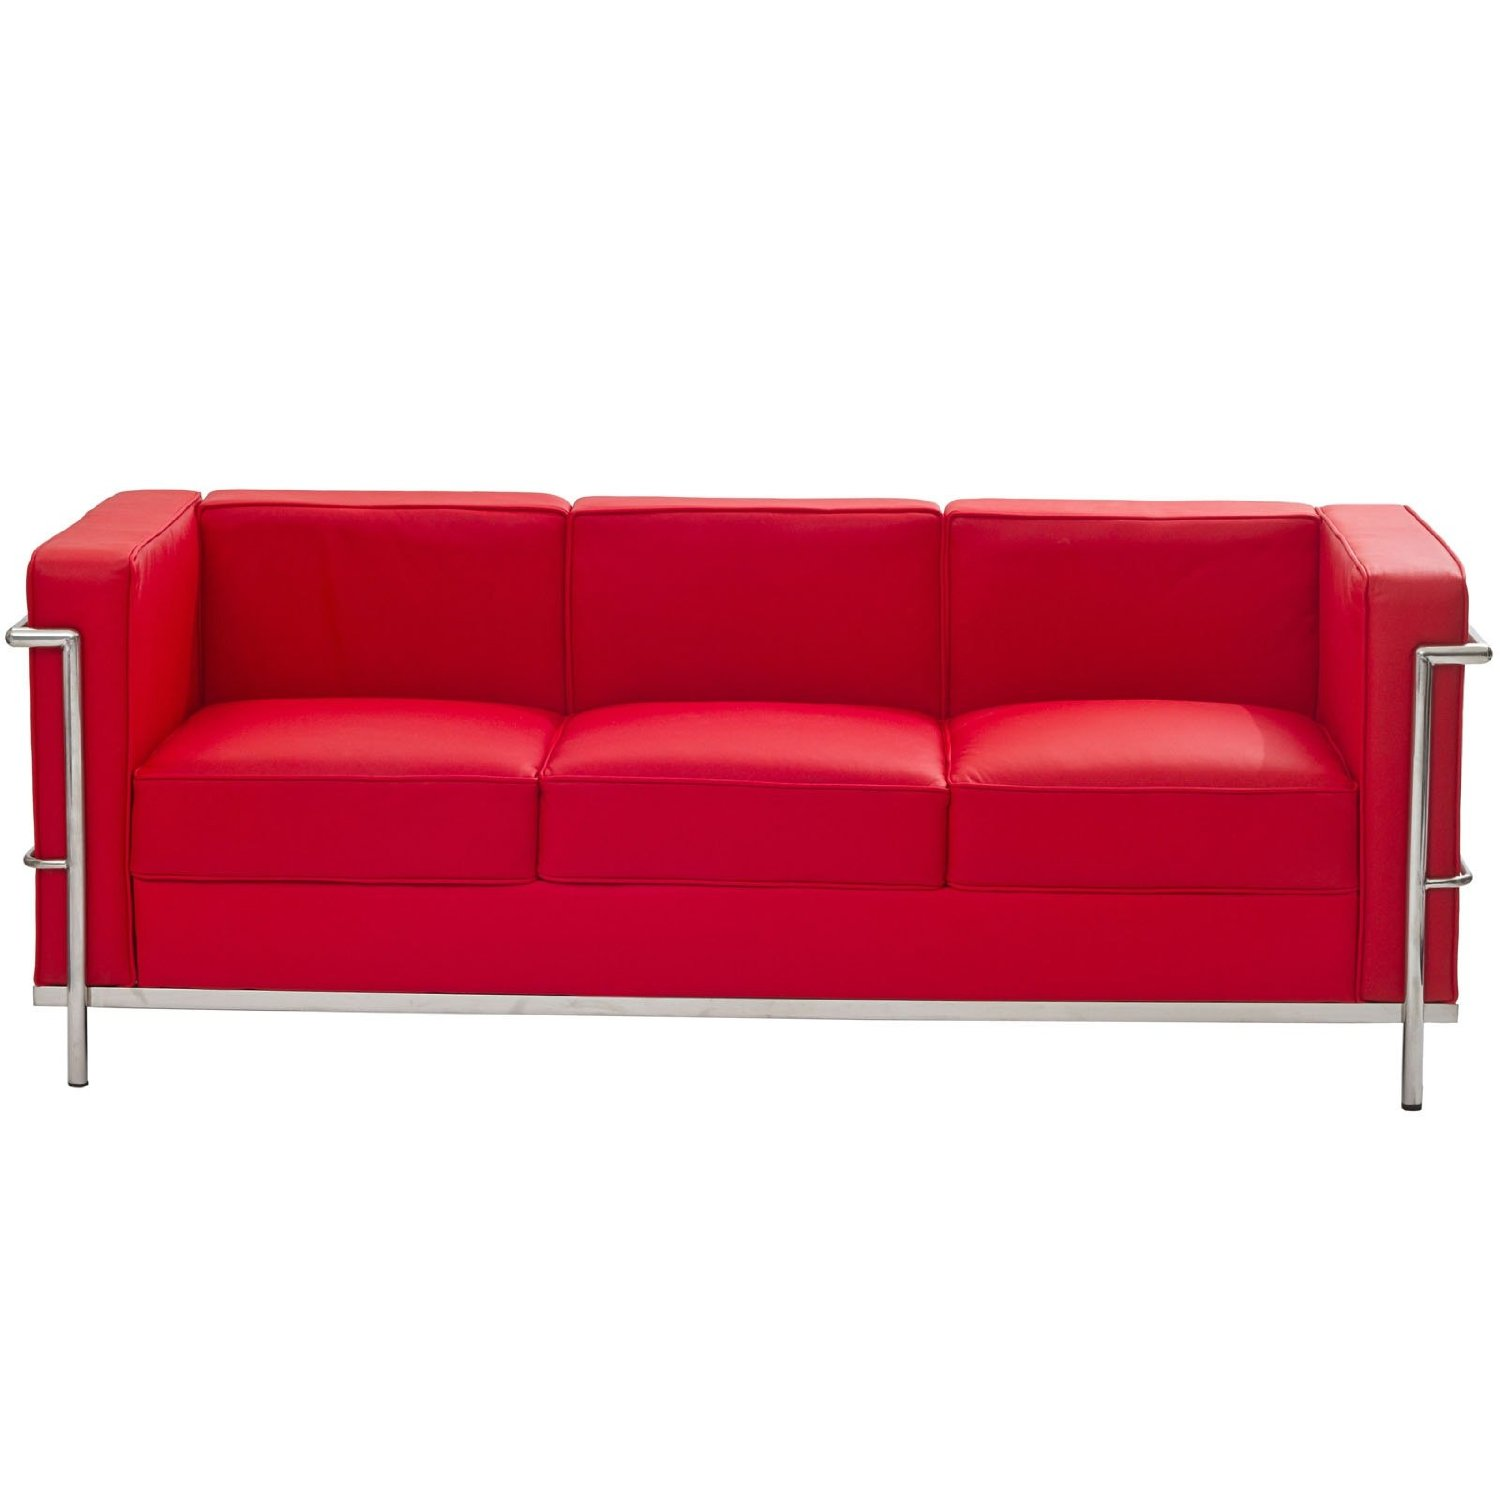 Picture of: Red leather sofa modern